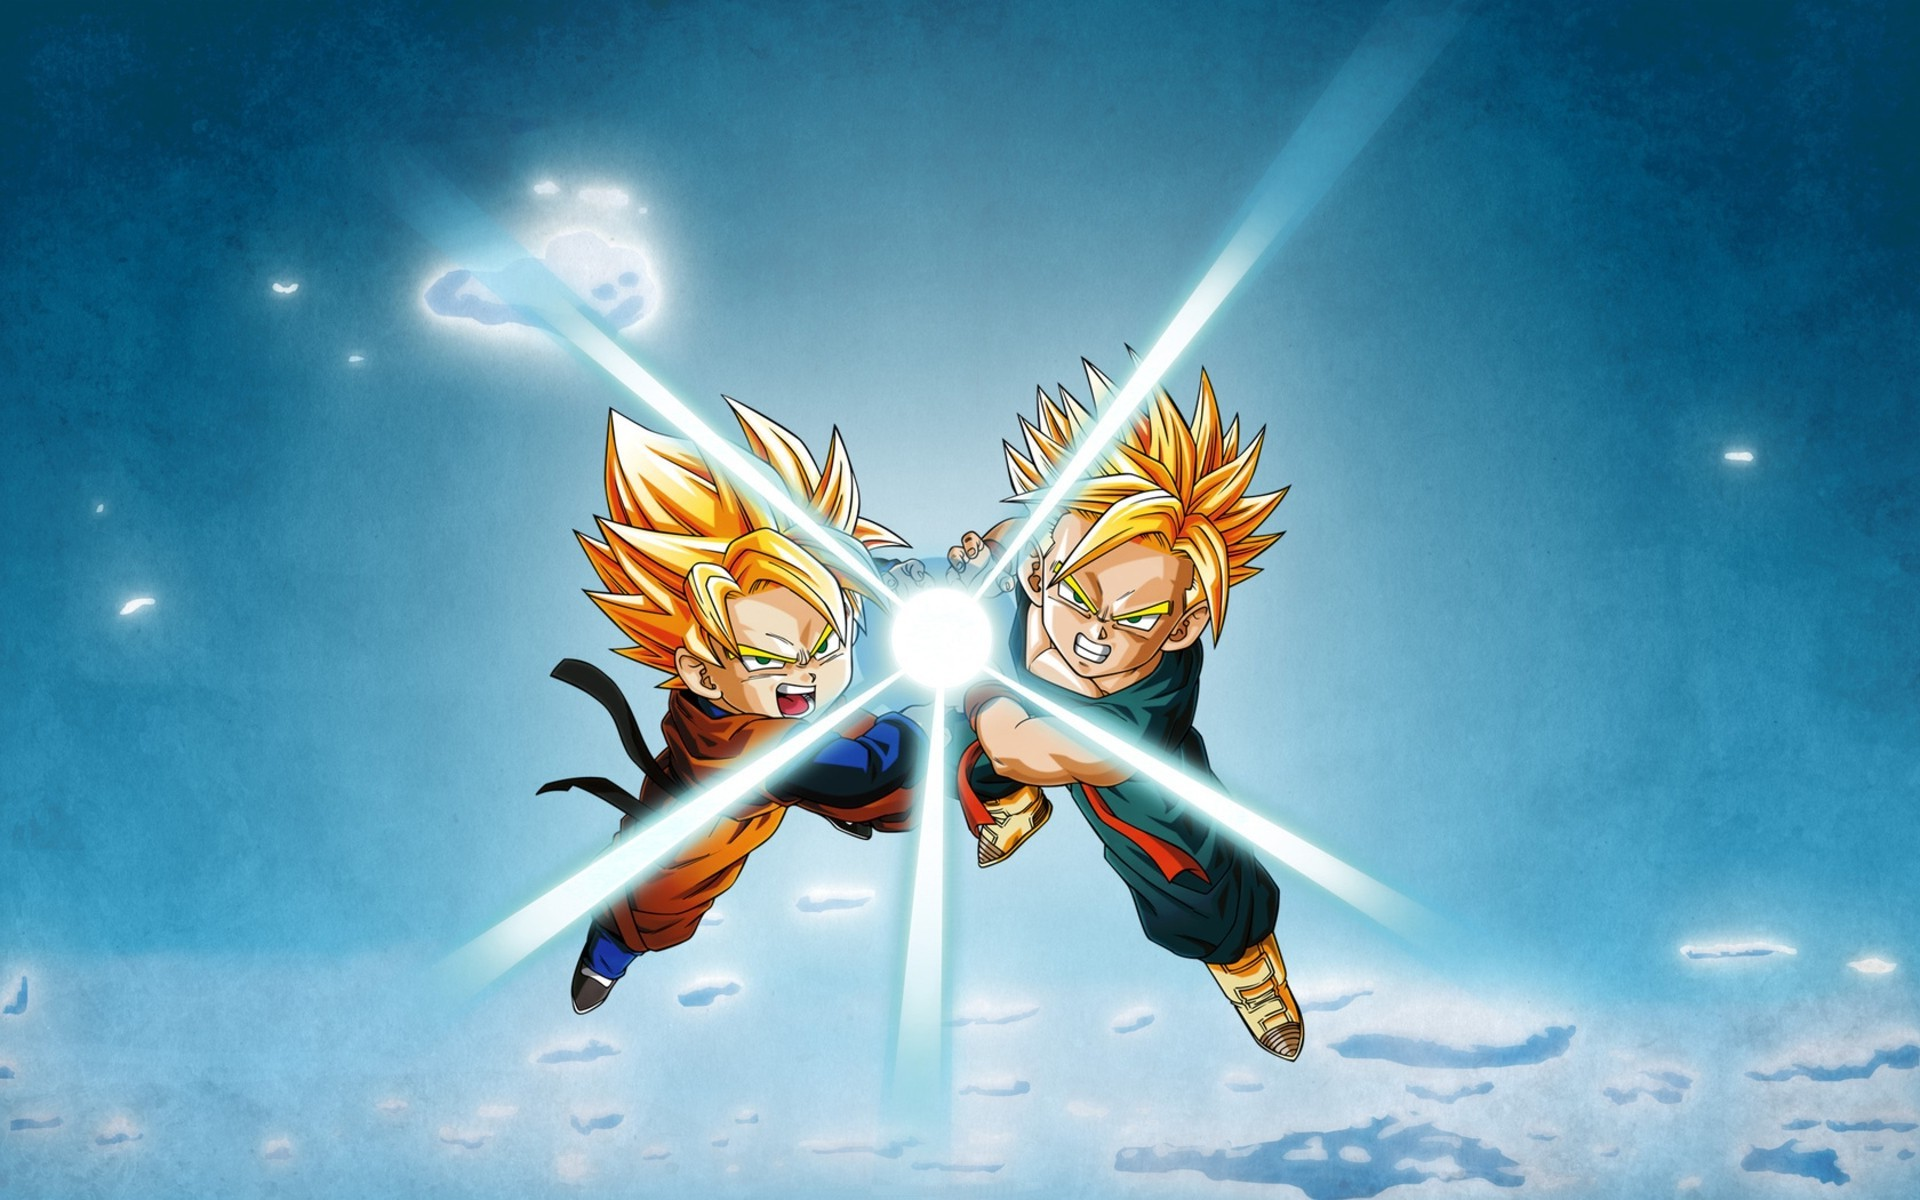 Goku And Gohan Kamehameha Wallpaper Posted By Christopher Walker